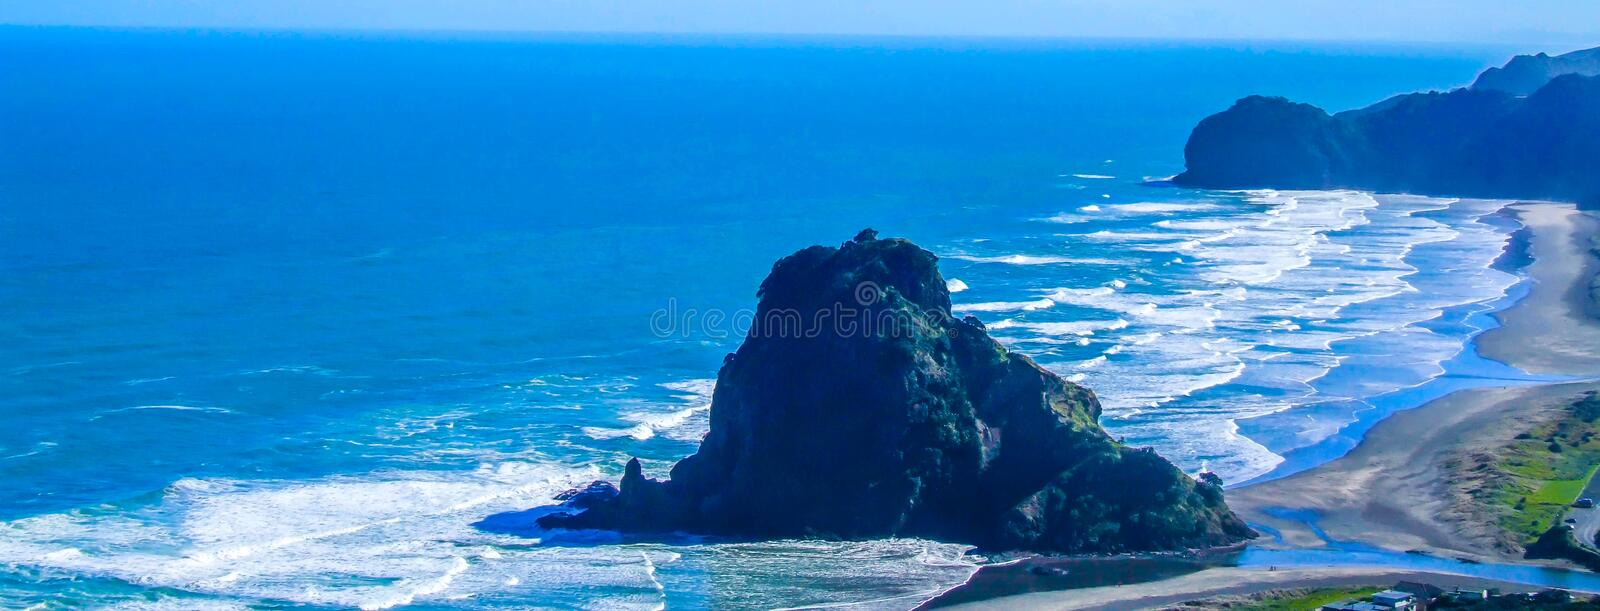 Piha Beach, north Island, auckland, New Zealand. Crashing oceans, high waves, surfing, rock formations, rock out crops, beaches, lion rock royalty free stock image